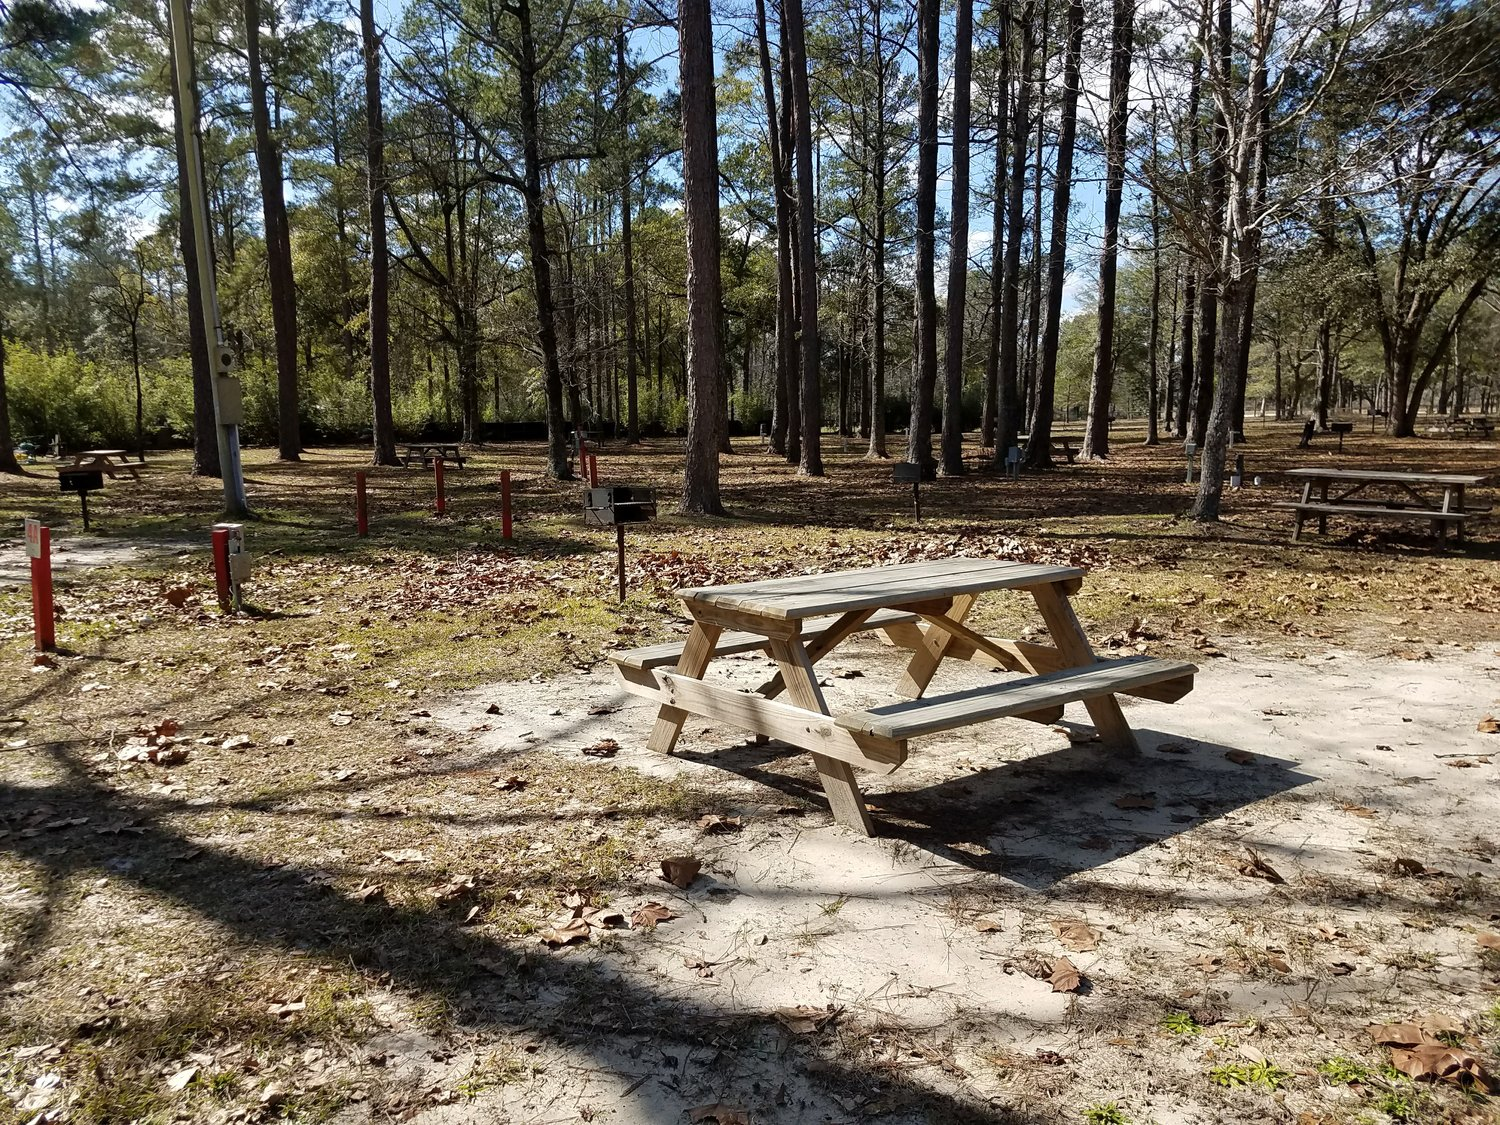 Picnic Tables and Grills - You will find picnic tables and grills in the grassy areas near the spring. Tables and grills are also located along the Spring Run and throughout our 25 acre wooded campground.